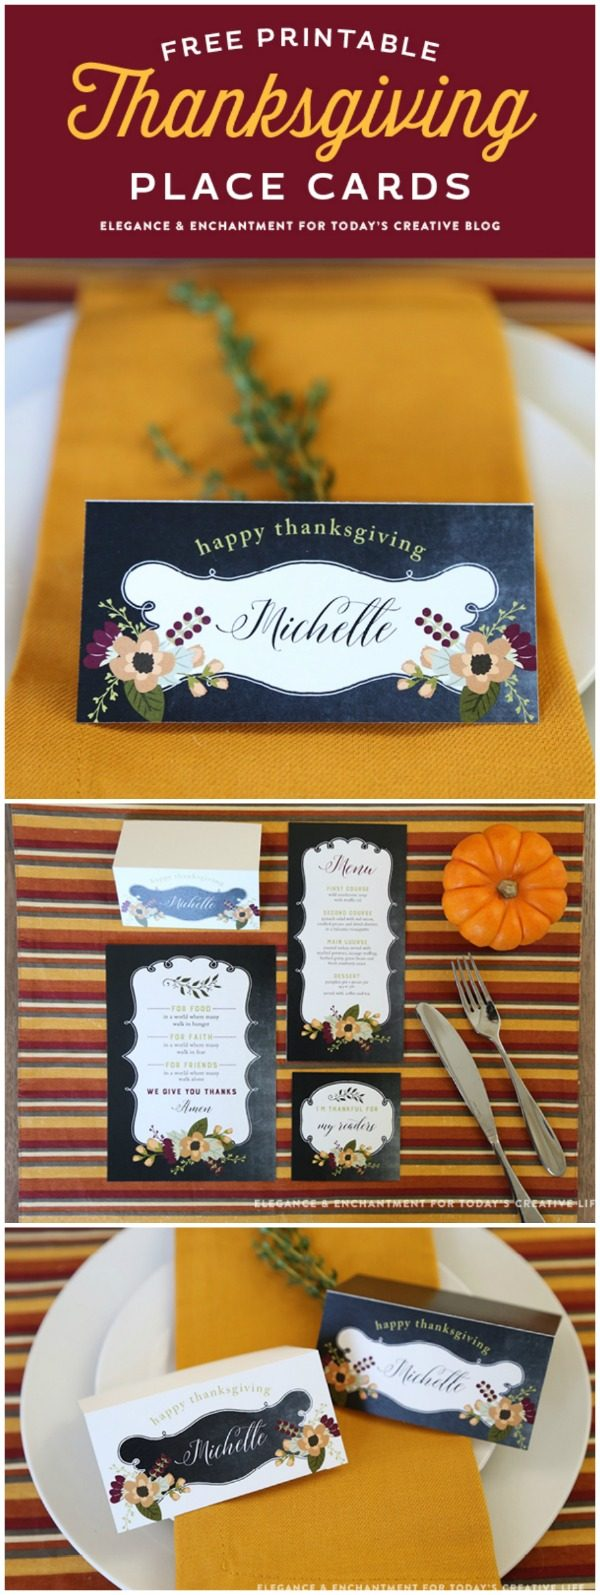 image about Free Printable Name Cards called No cost Printable Thanksgiving Destination Playing cards Todays Artistic Lifetime